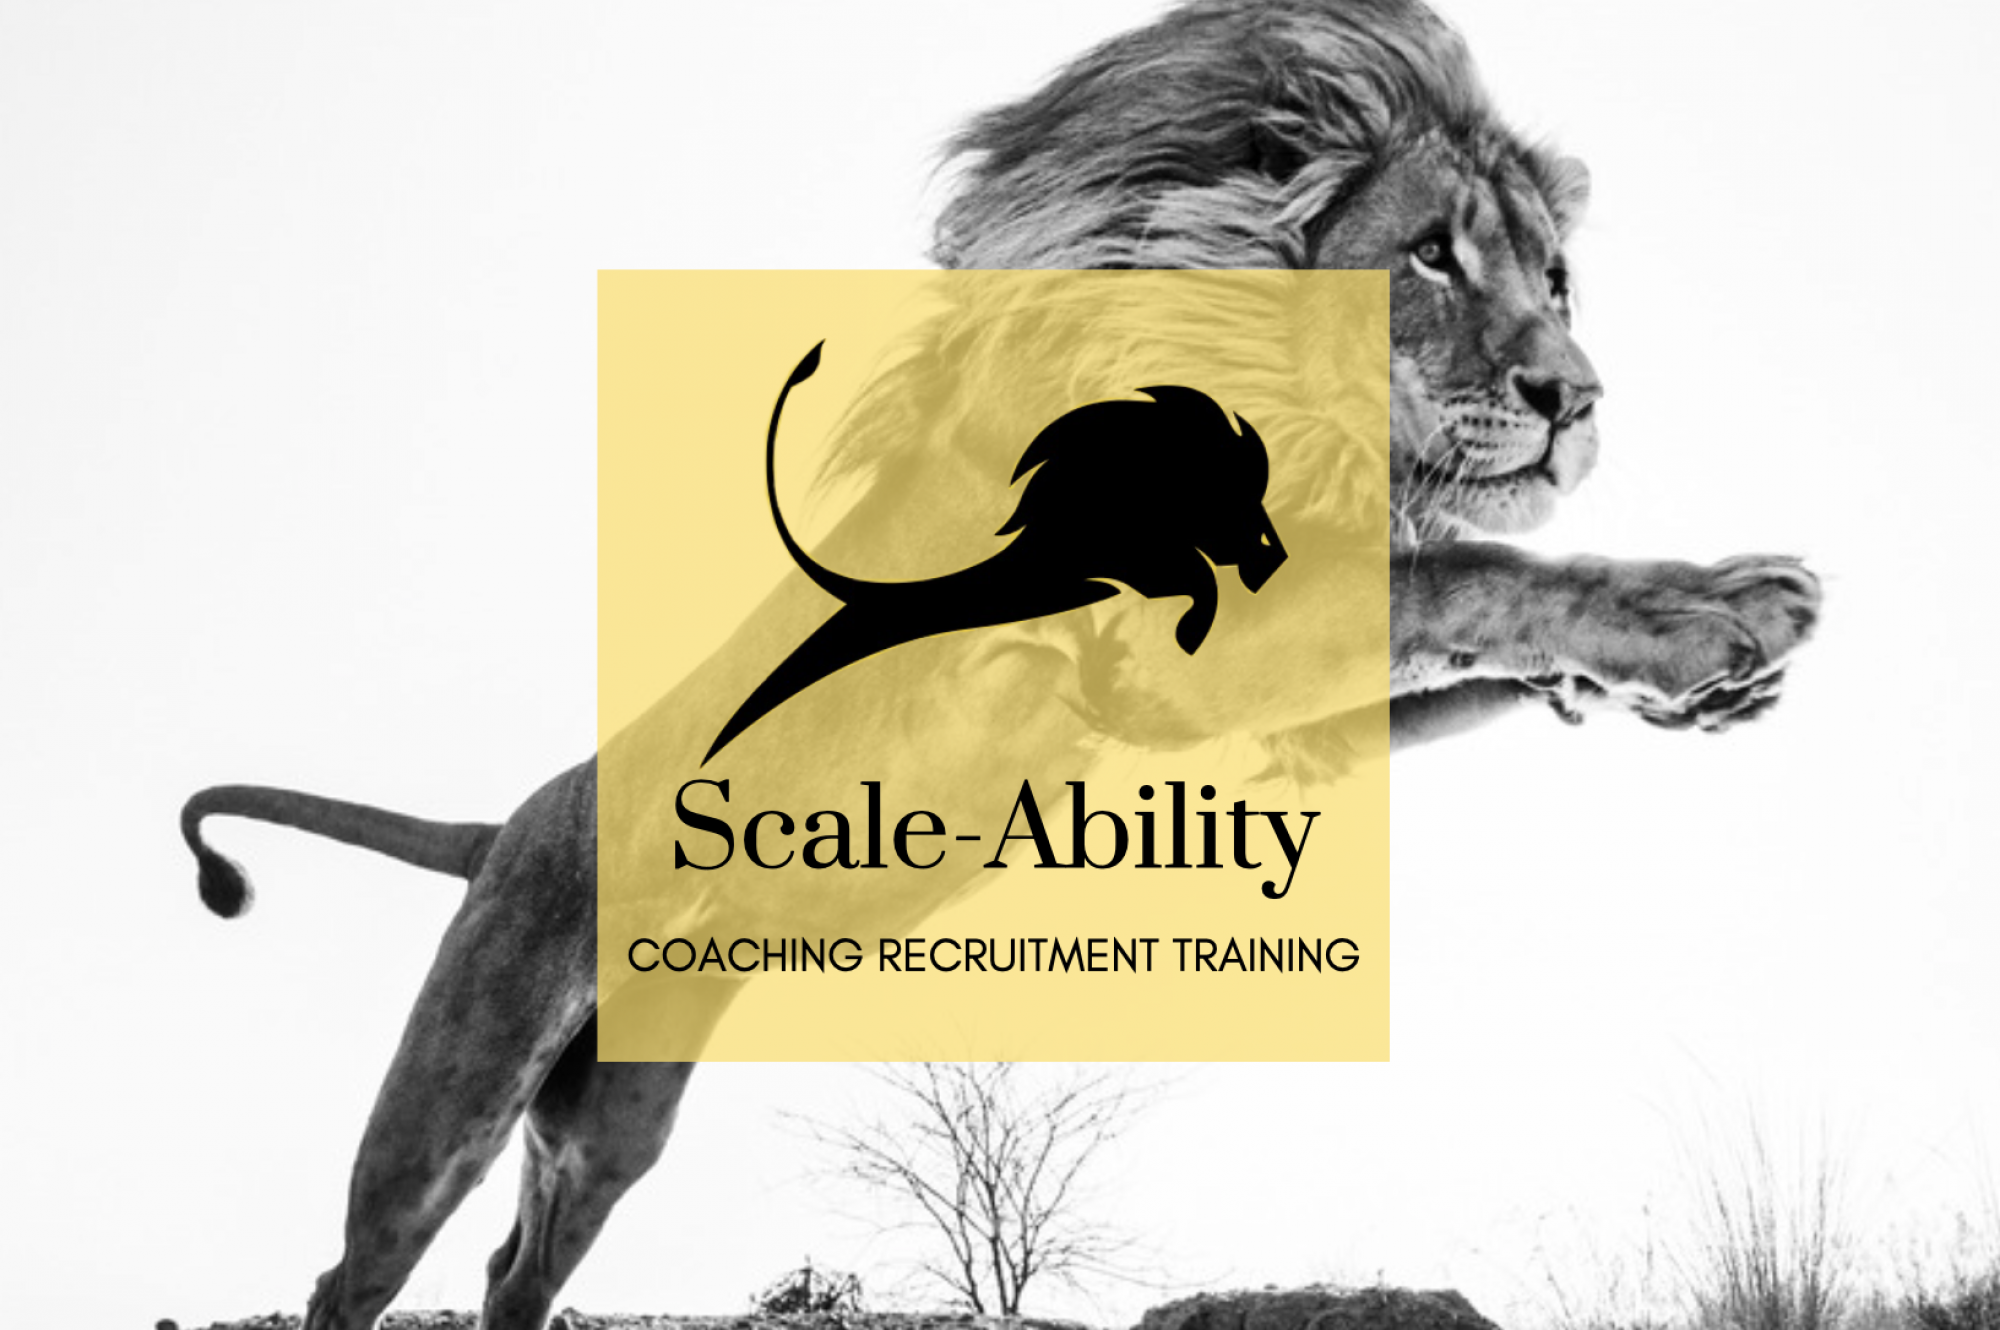 Scale-Ability